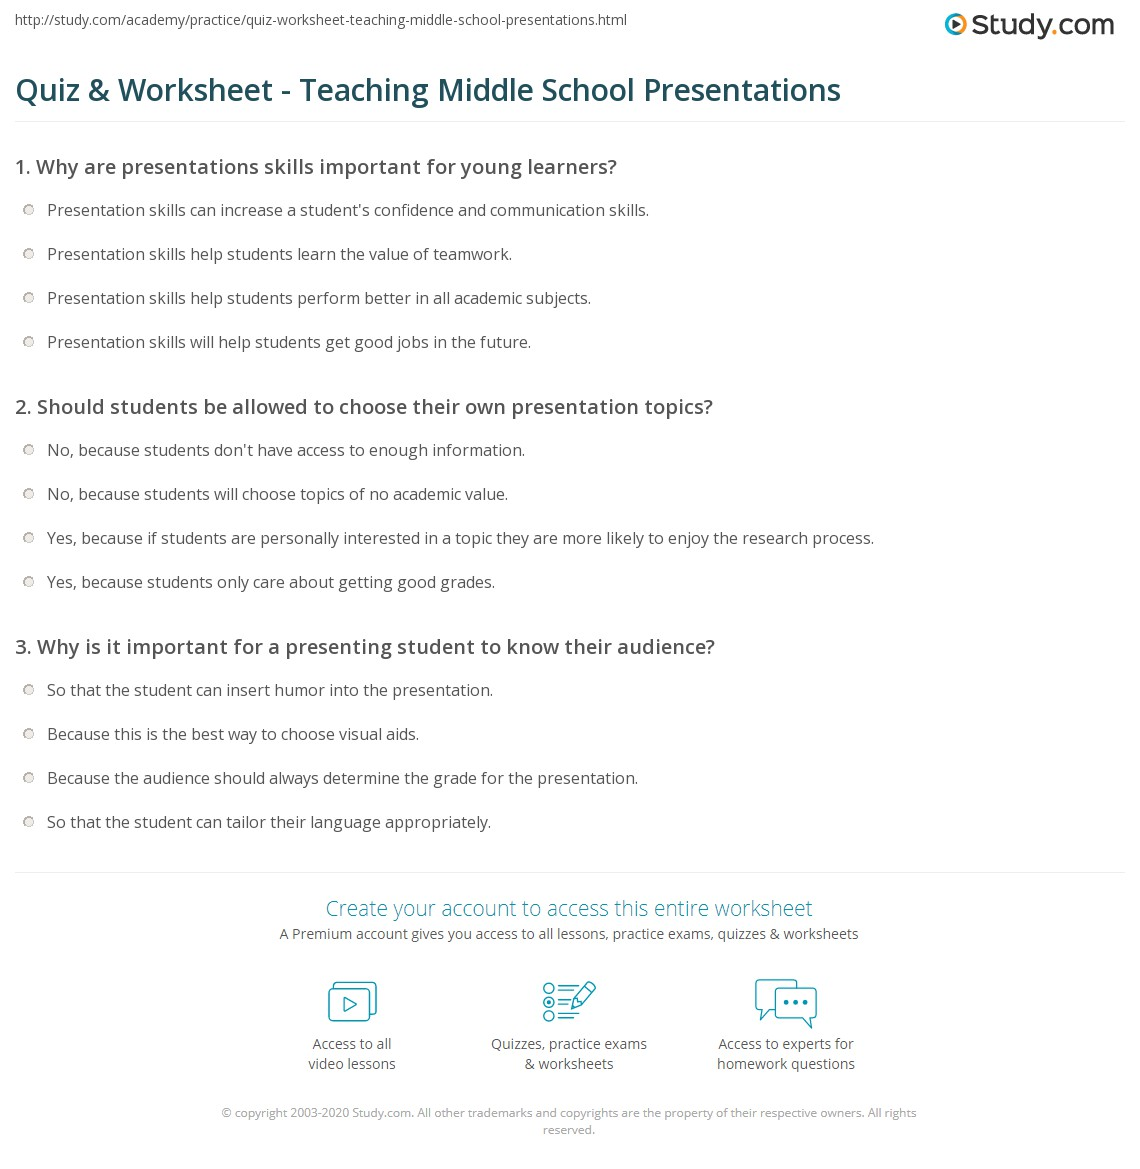 quiz worksheet teaching middle school presentations com should students be allowed to choose their own presentation topics